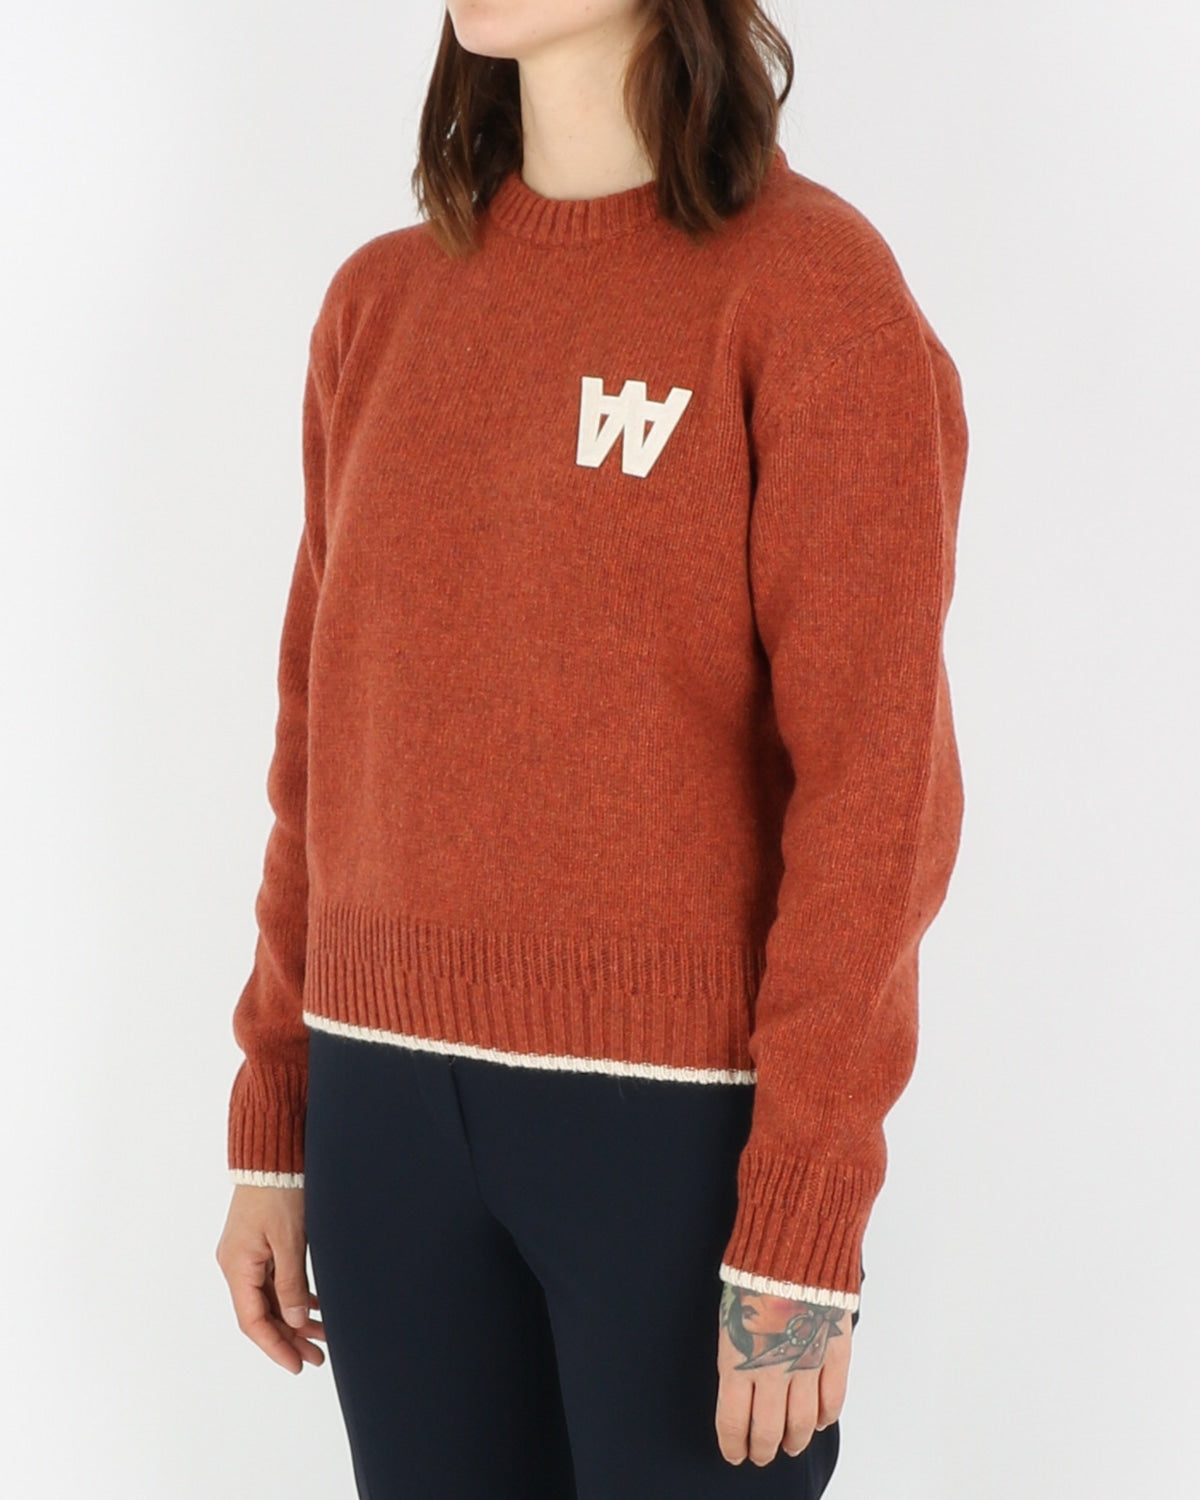 wood wood_anneli sweater_rust_view_2_4